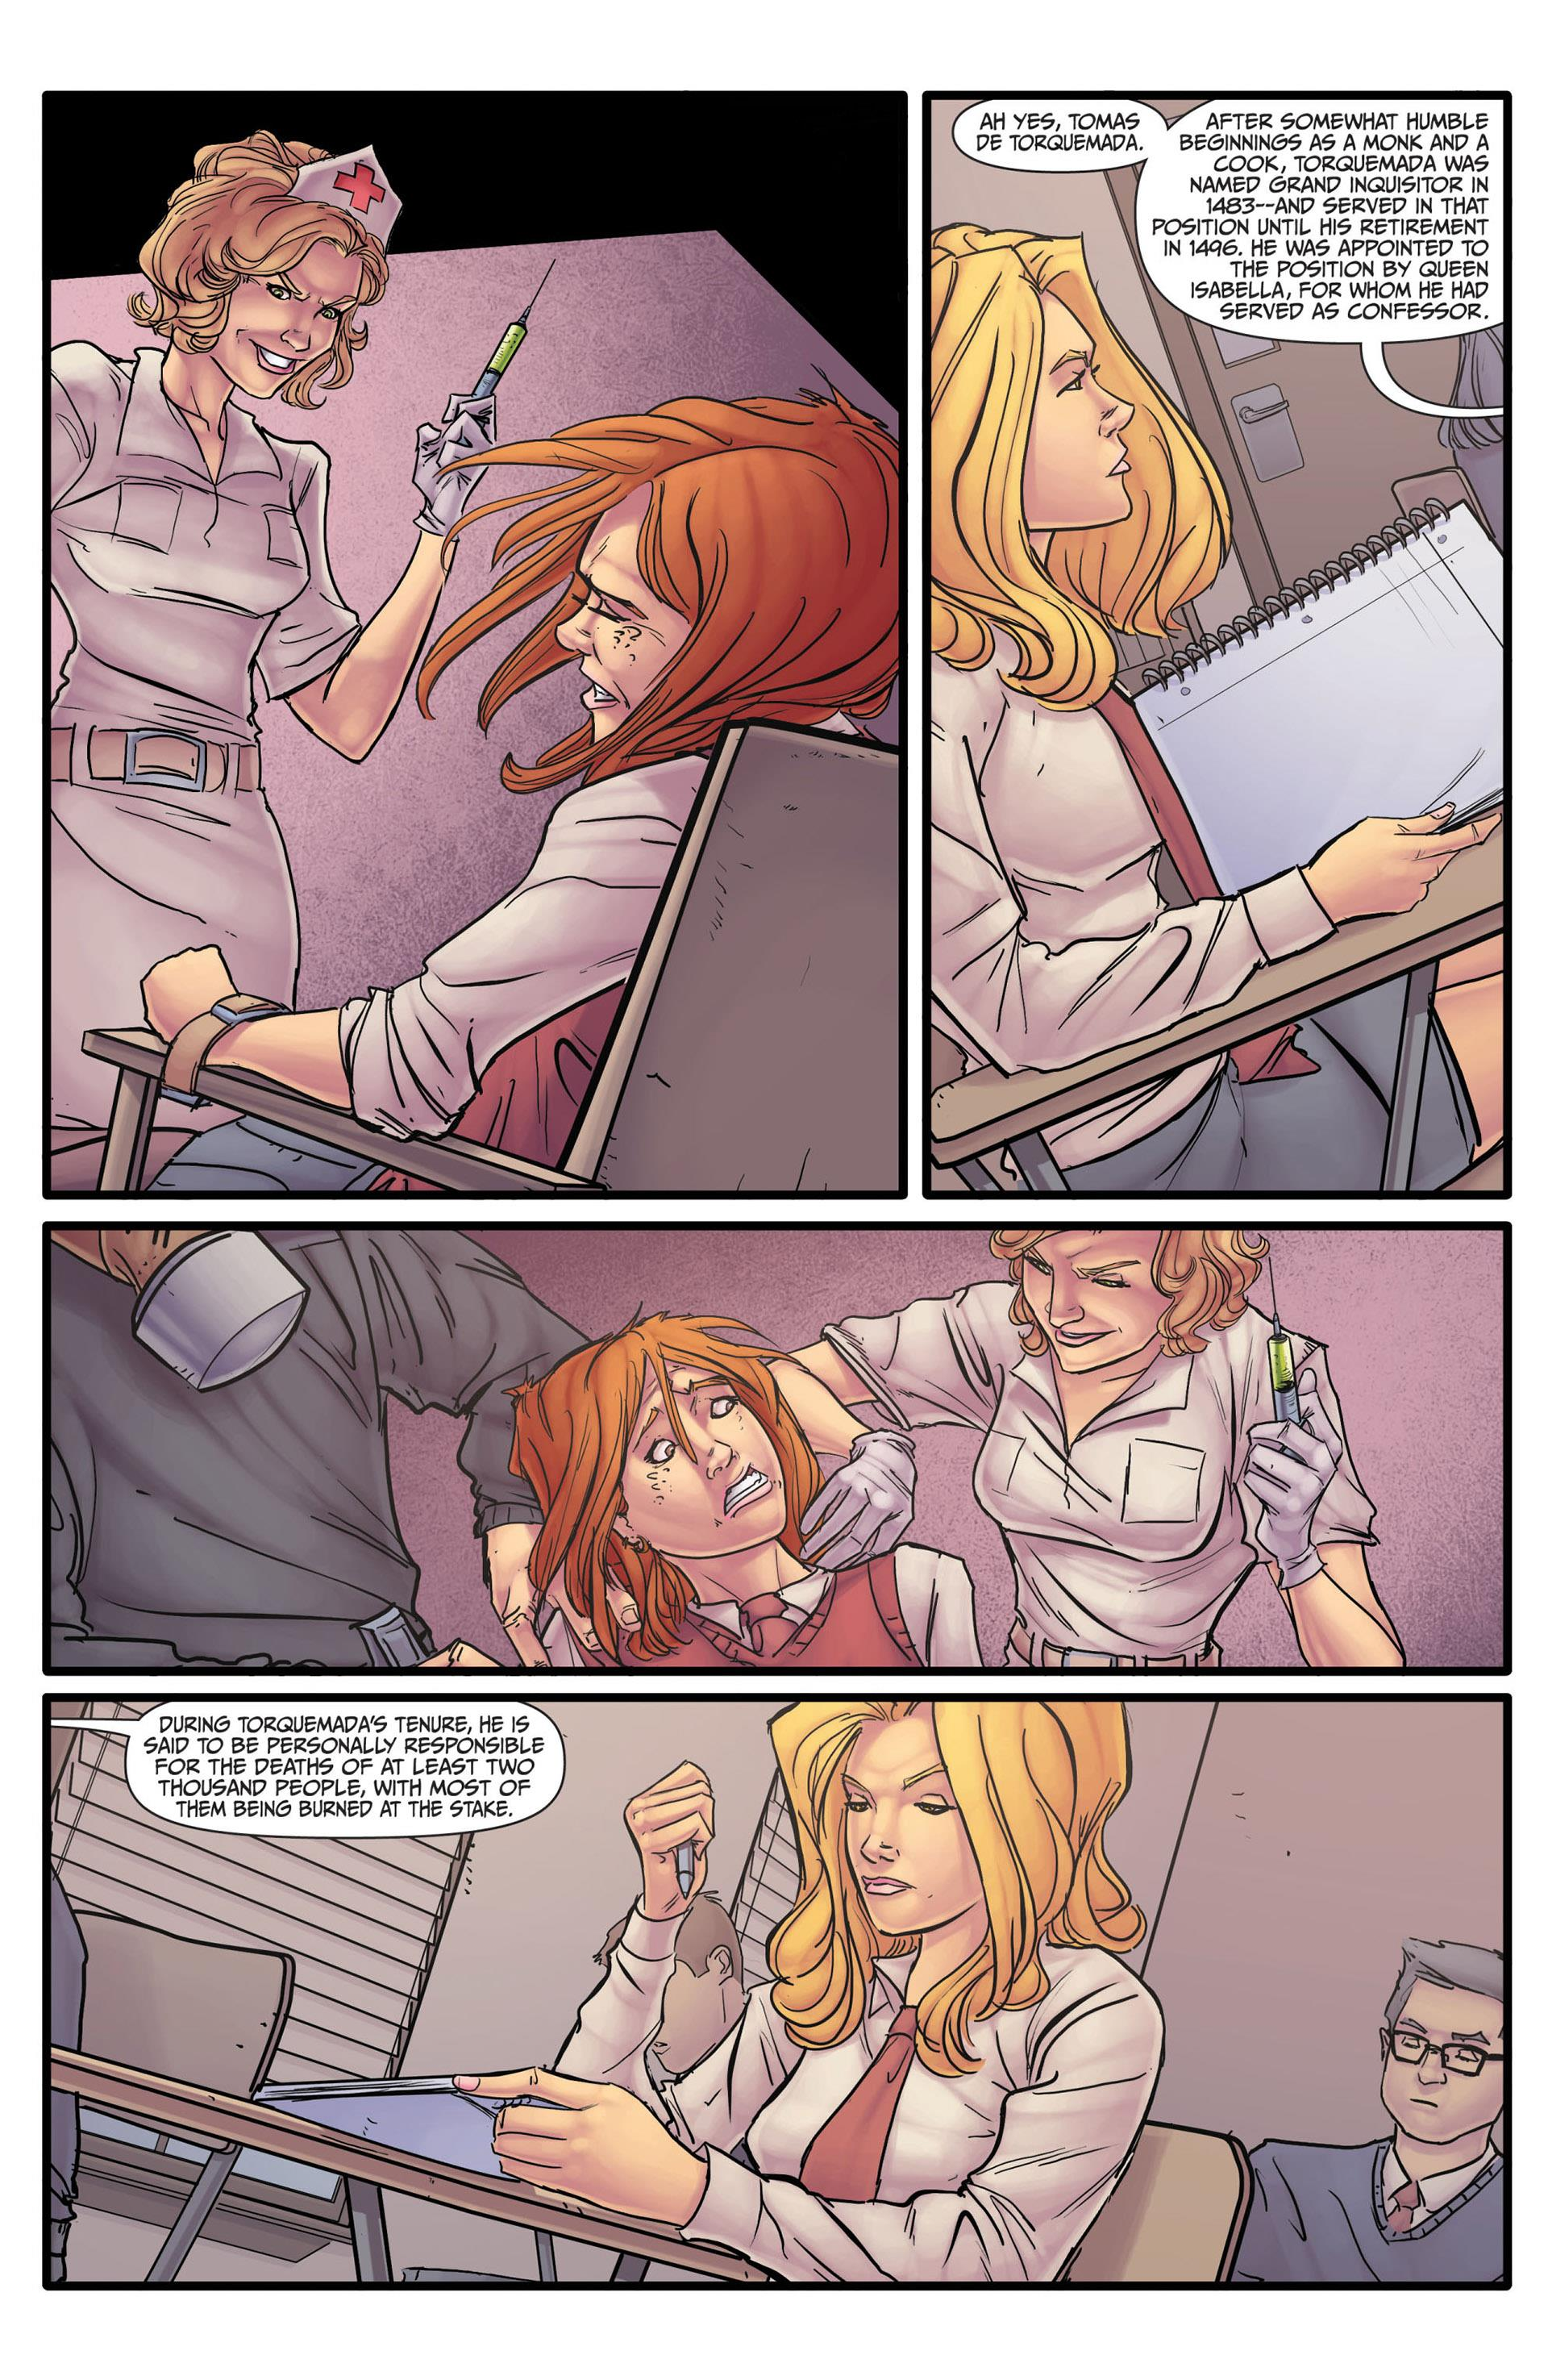 Morning Glories Deluxe Collection Volume 1 review